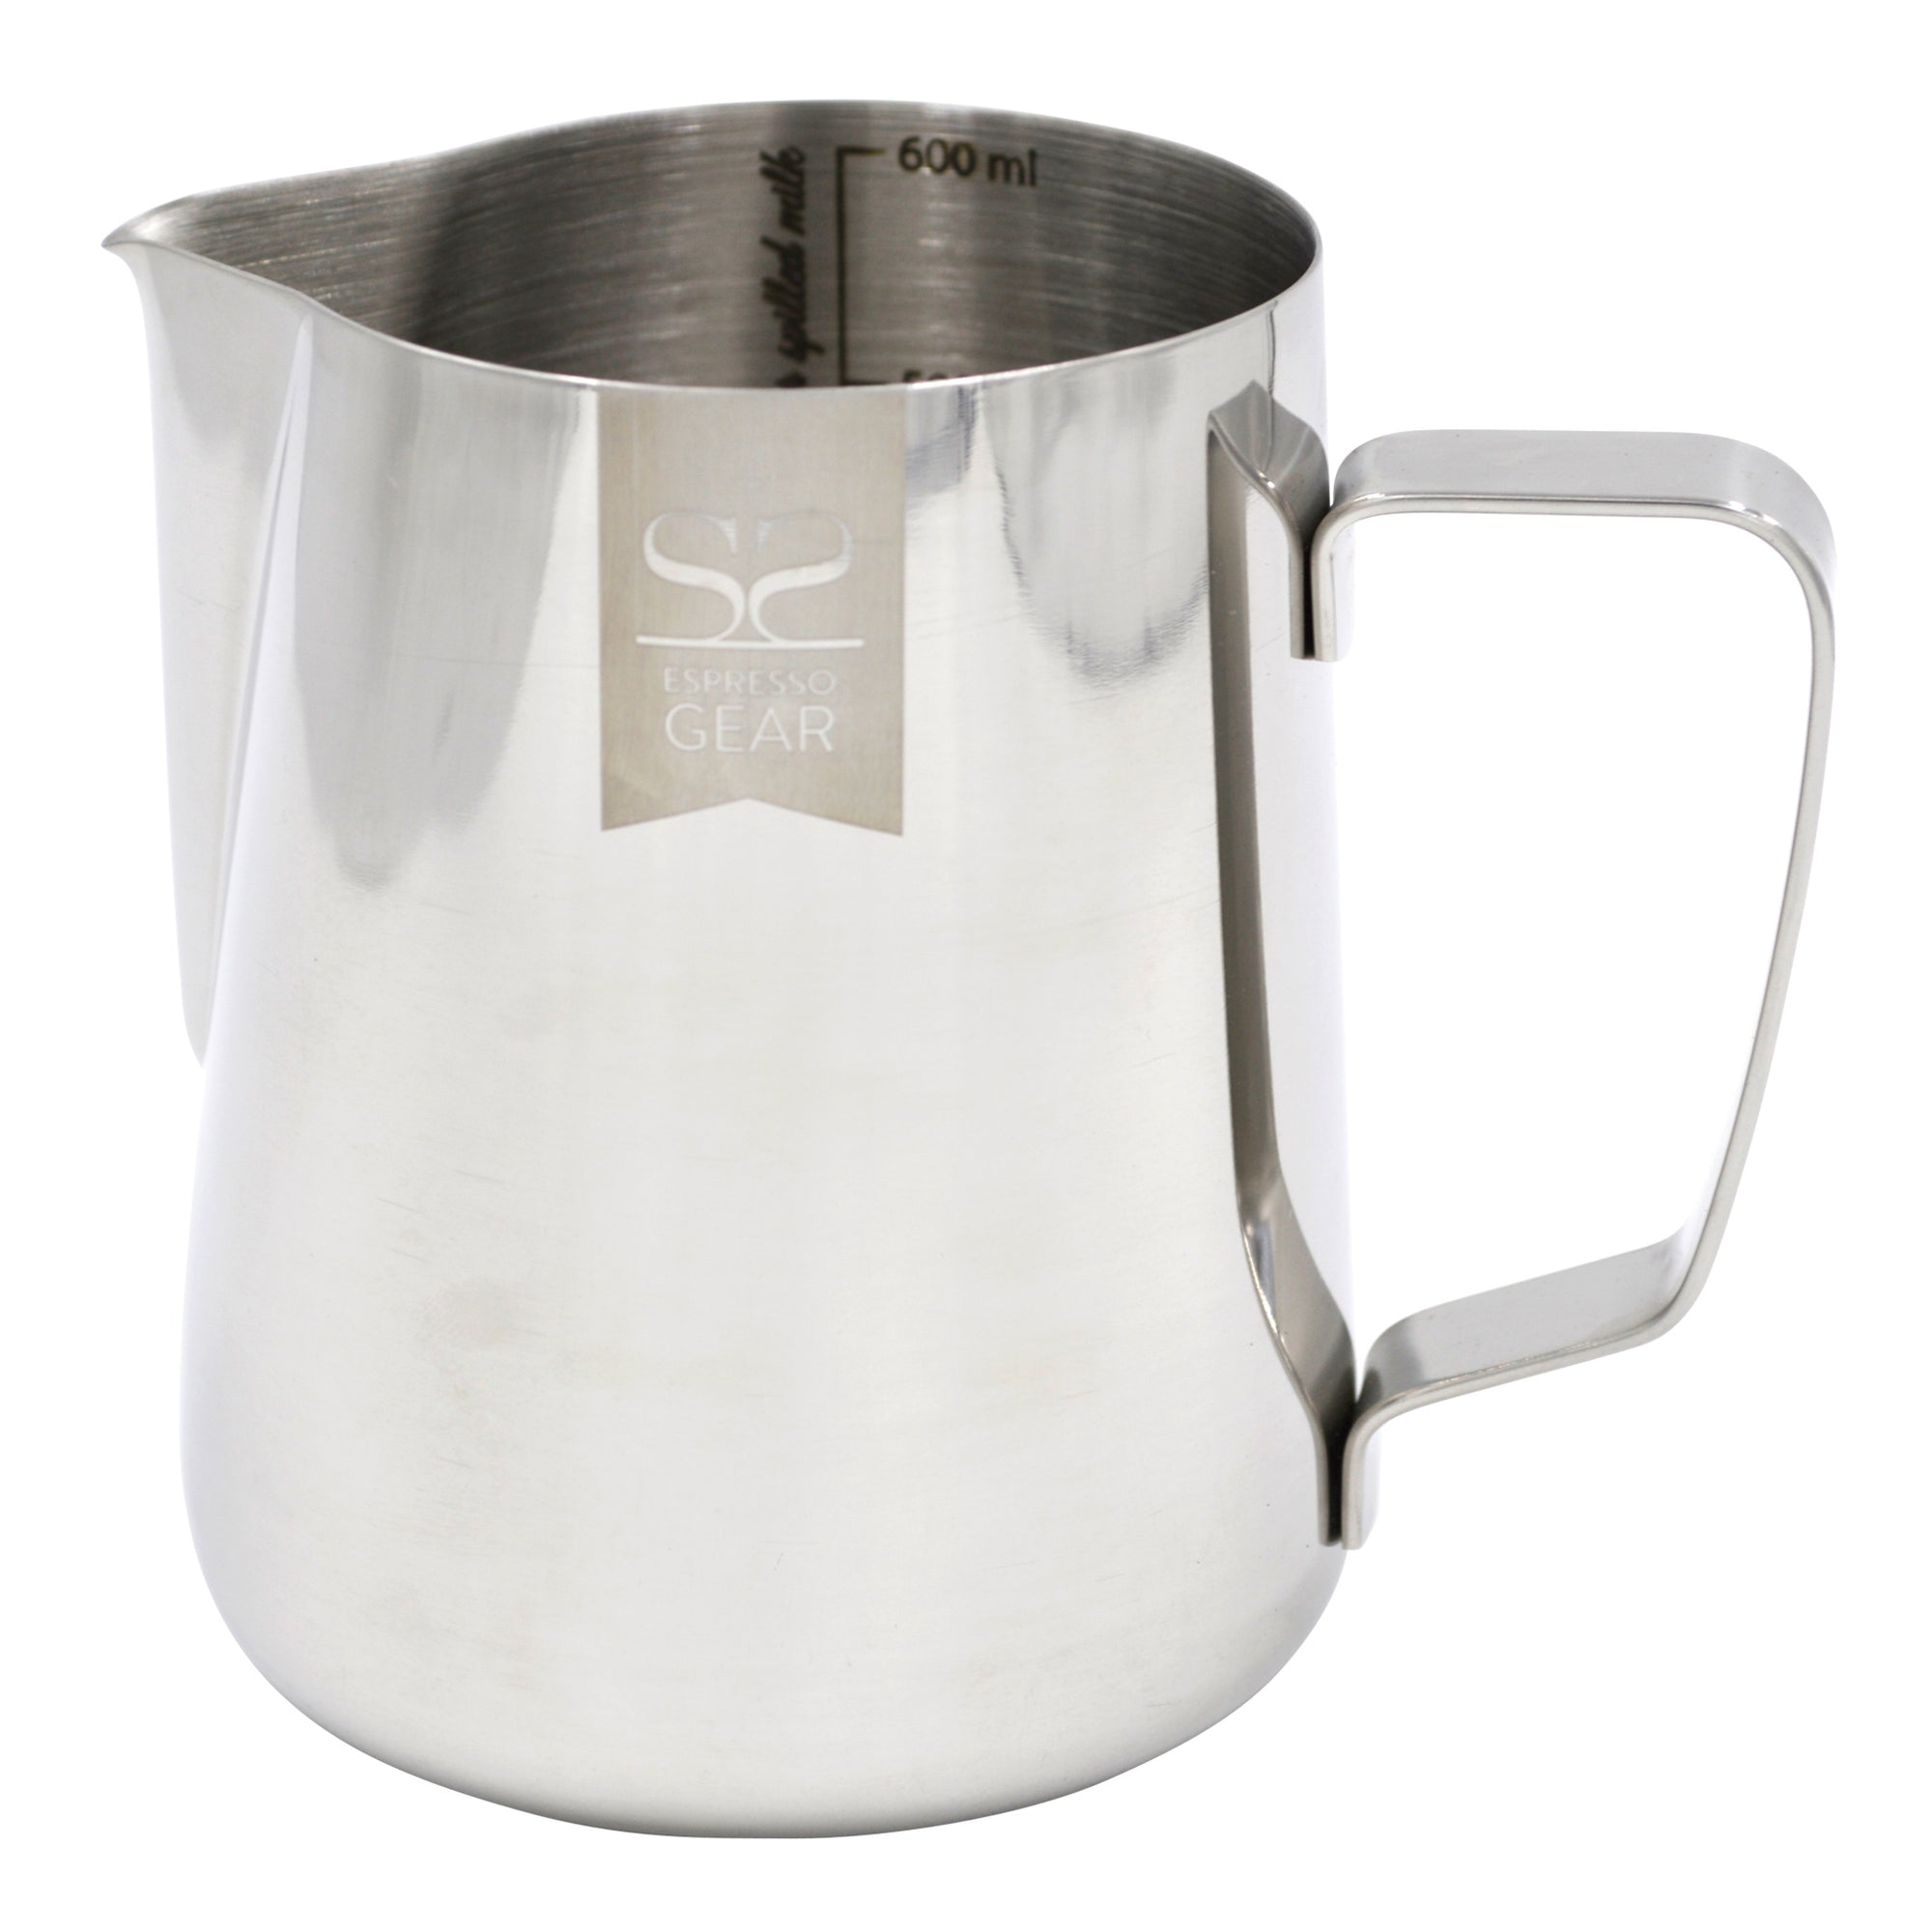 Espresso Gear Stainless Steel Pitcher 1.5L - Espresso Gear